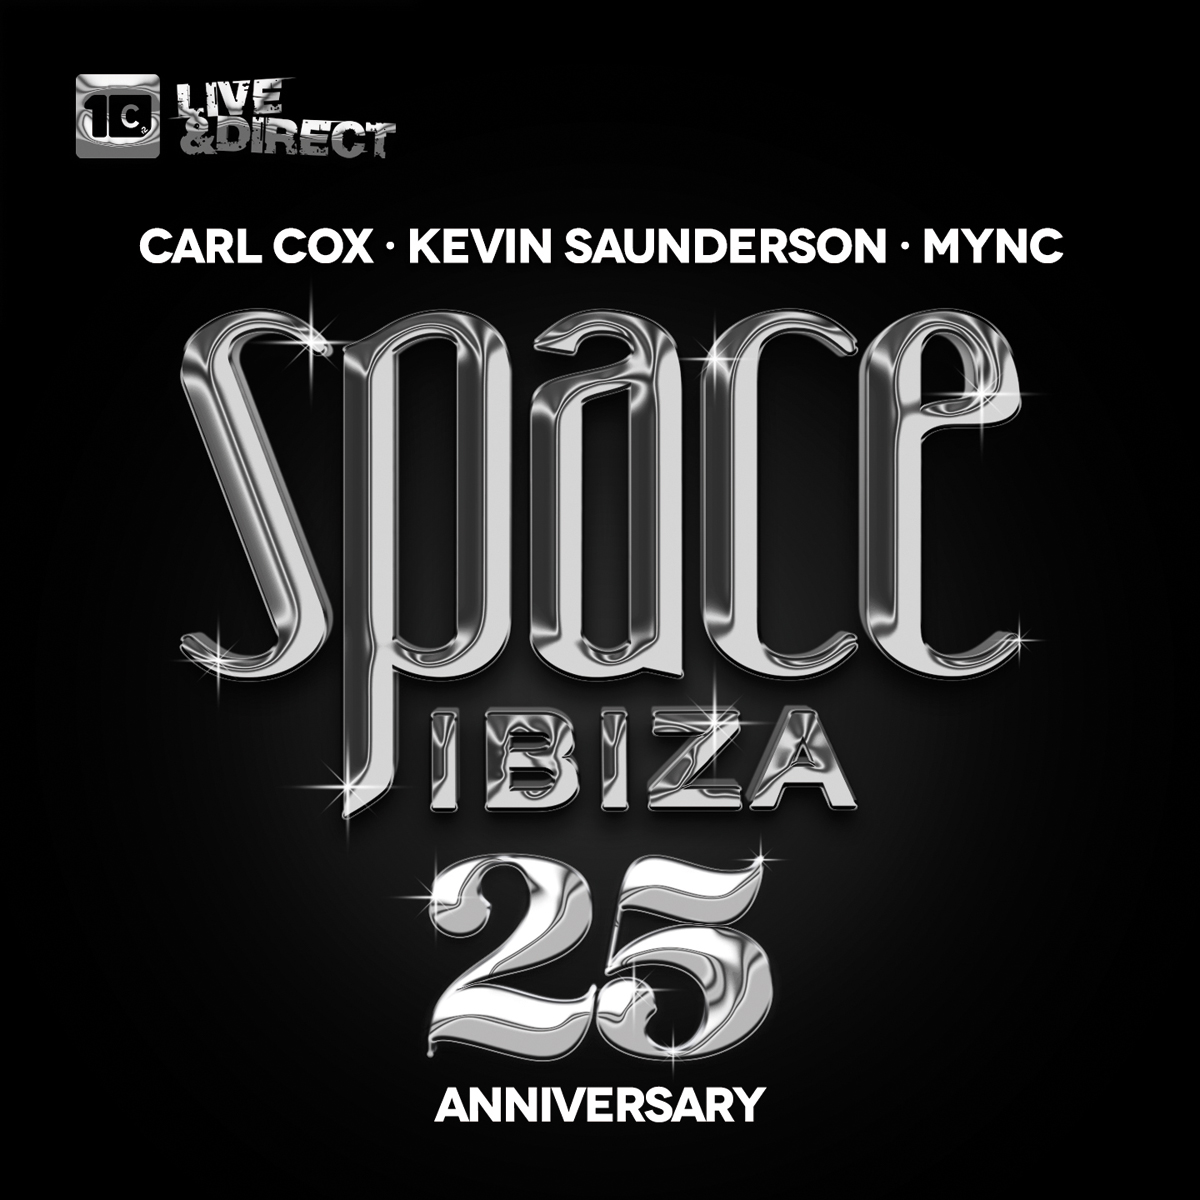 Space Ibiza 2014 (25th Anniversary)